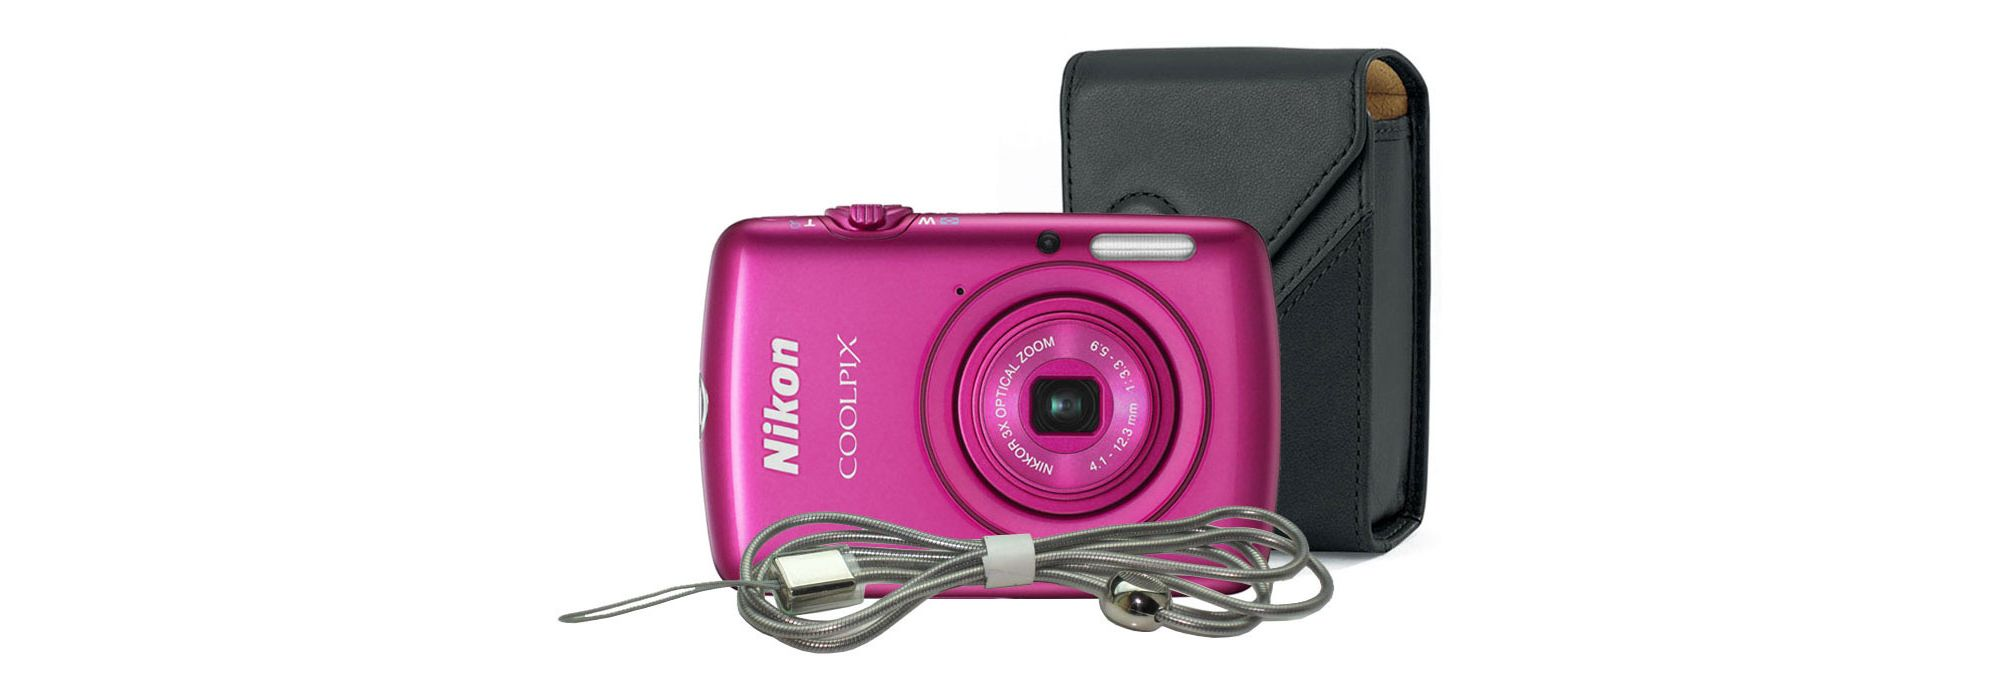 DS Nikon Coolpix S01 Pink Camera Kit inc Lowepro Leather Case & Steel Lanyard